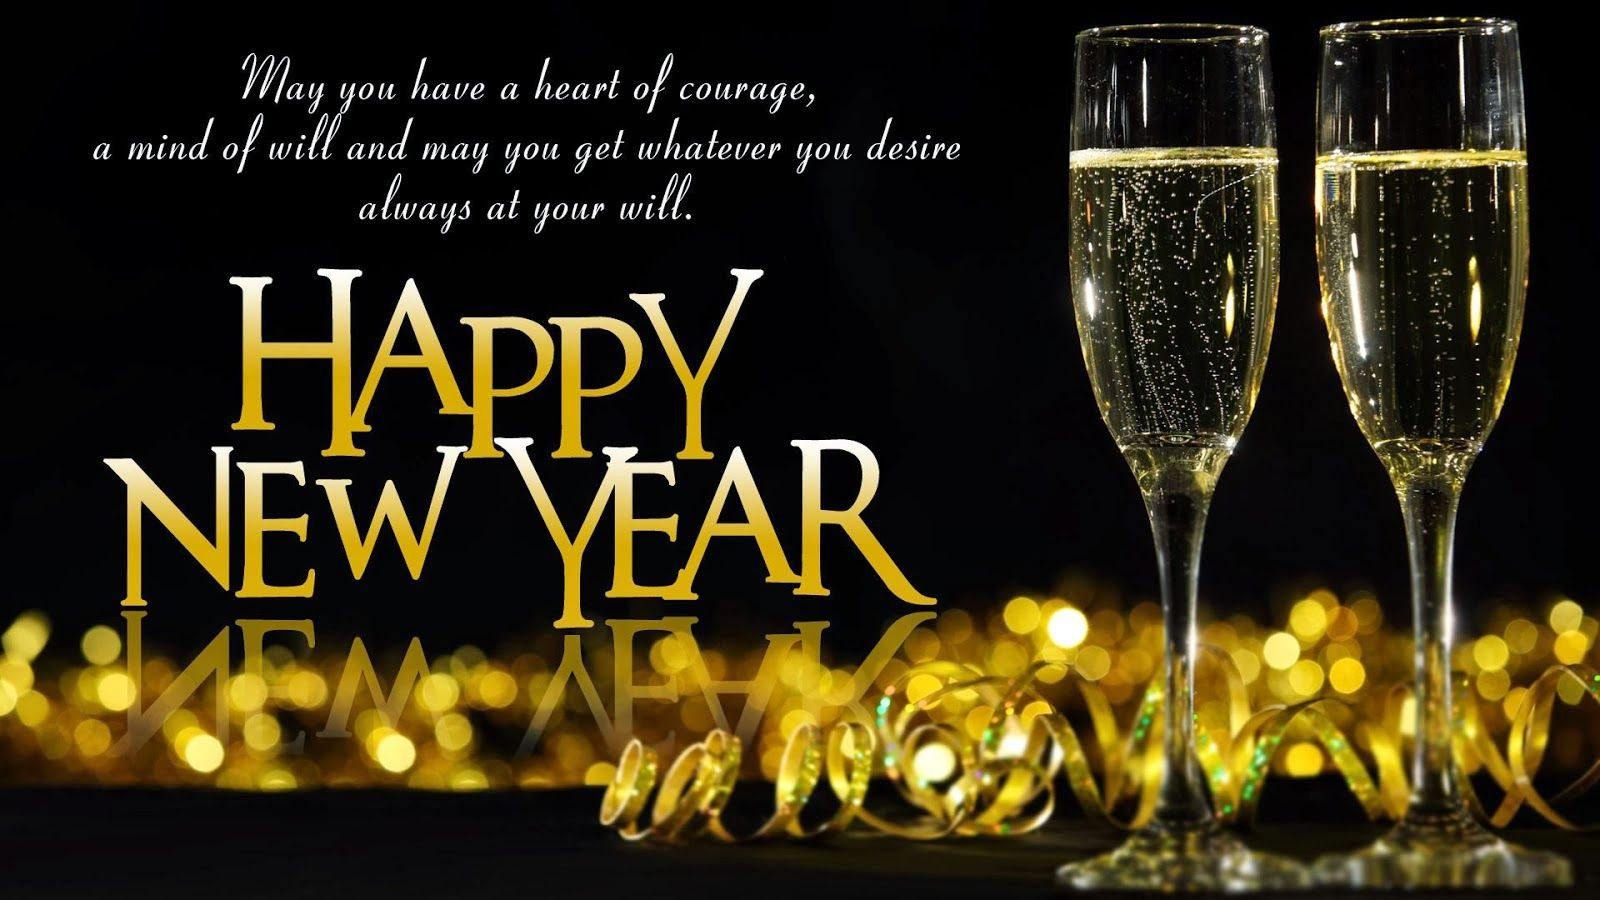 Happy New Year 2017 Happy New Year Wishes, Quotes